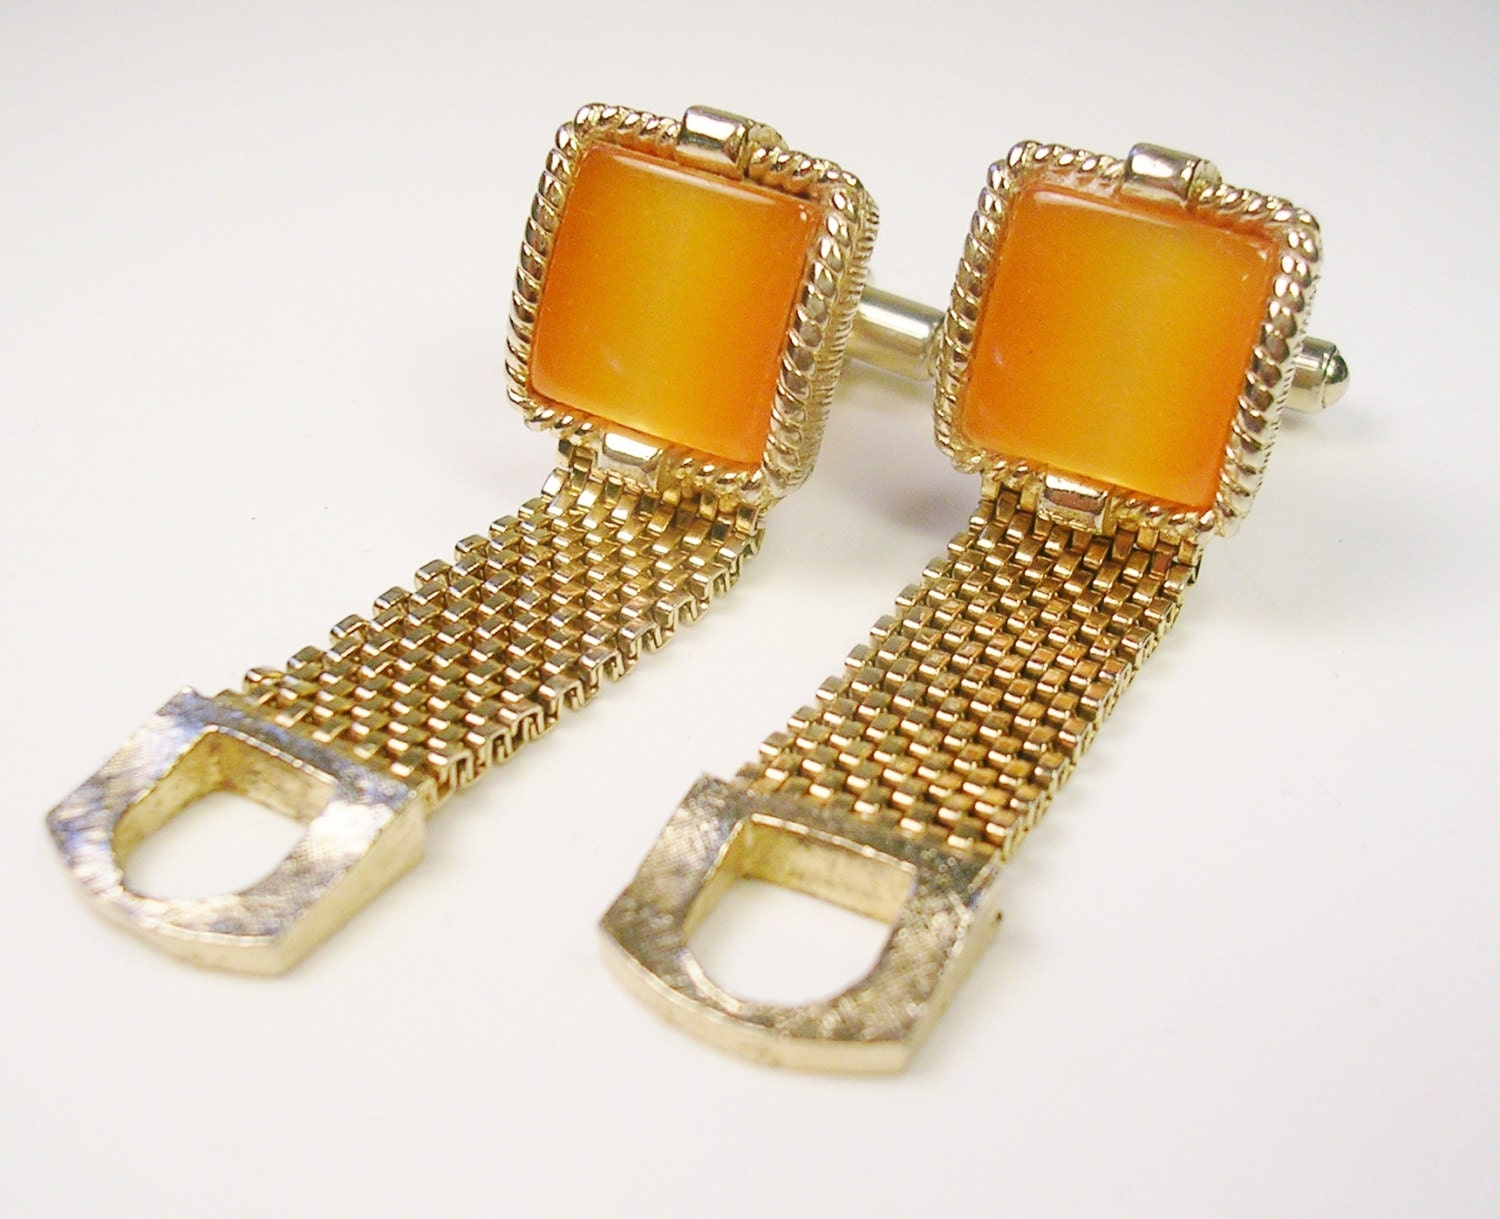 Vintage swank cufflinks gold tone mesh wrap orange for What is swank jewelry